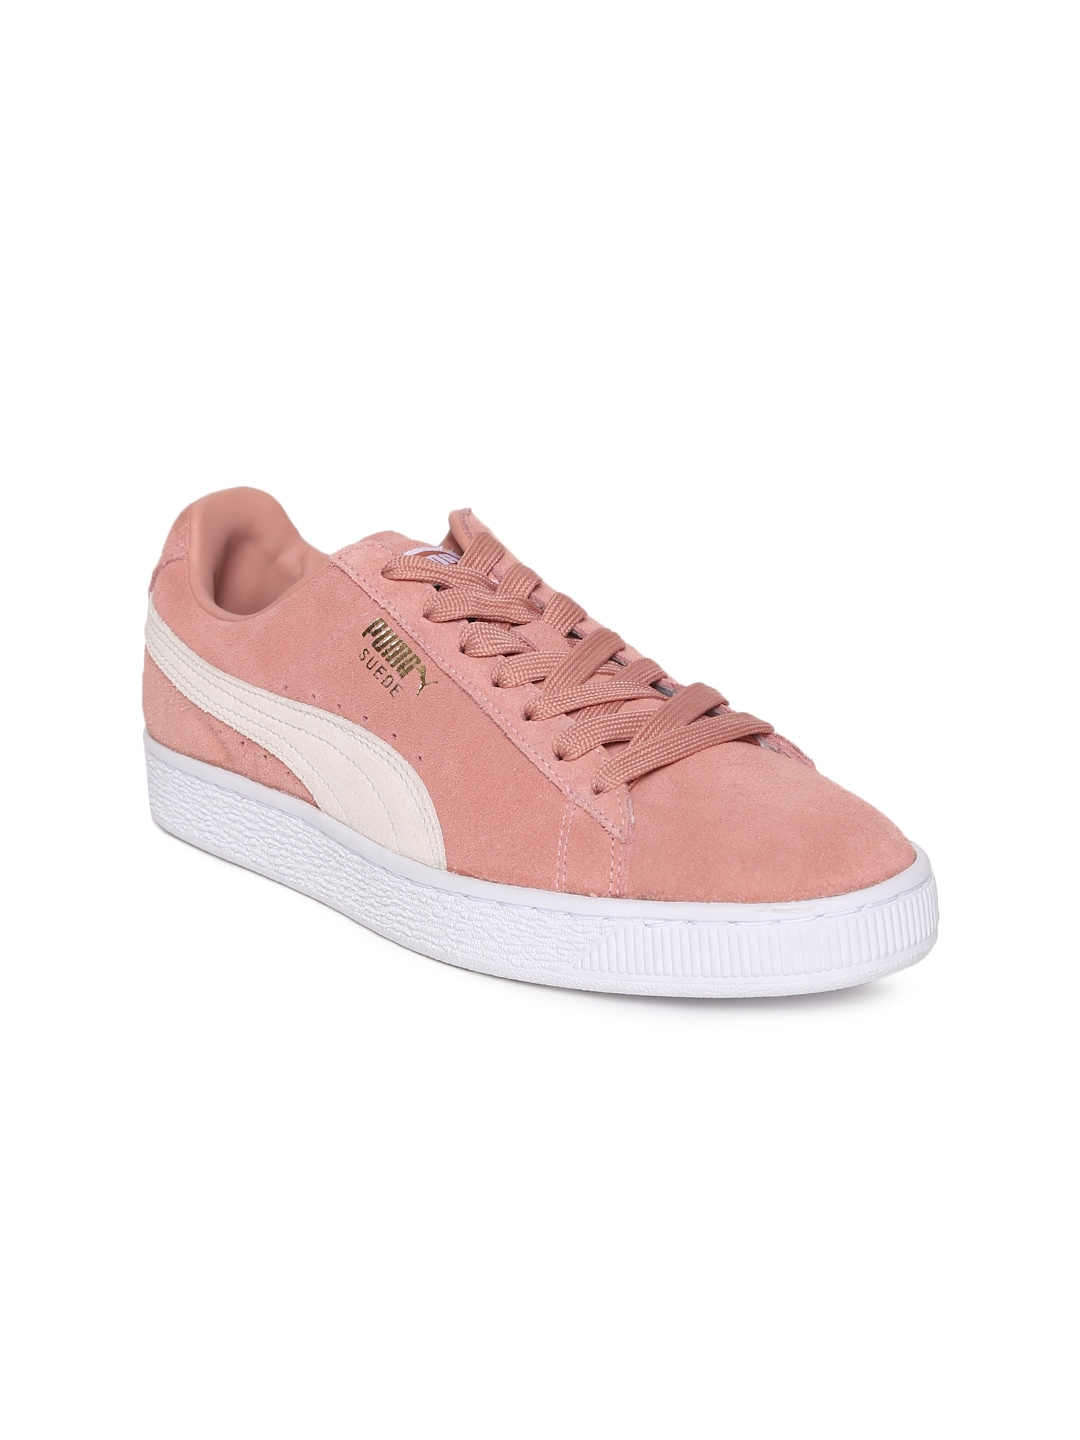 ecdc0aaa01e Puma Suede Aw17 547792 - Buy Puma Suede Aw17 547792 online in India